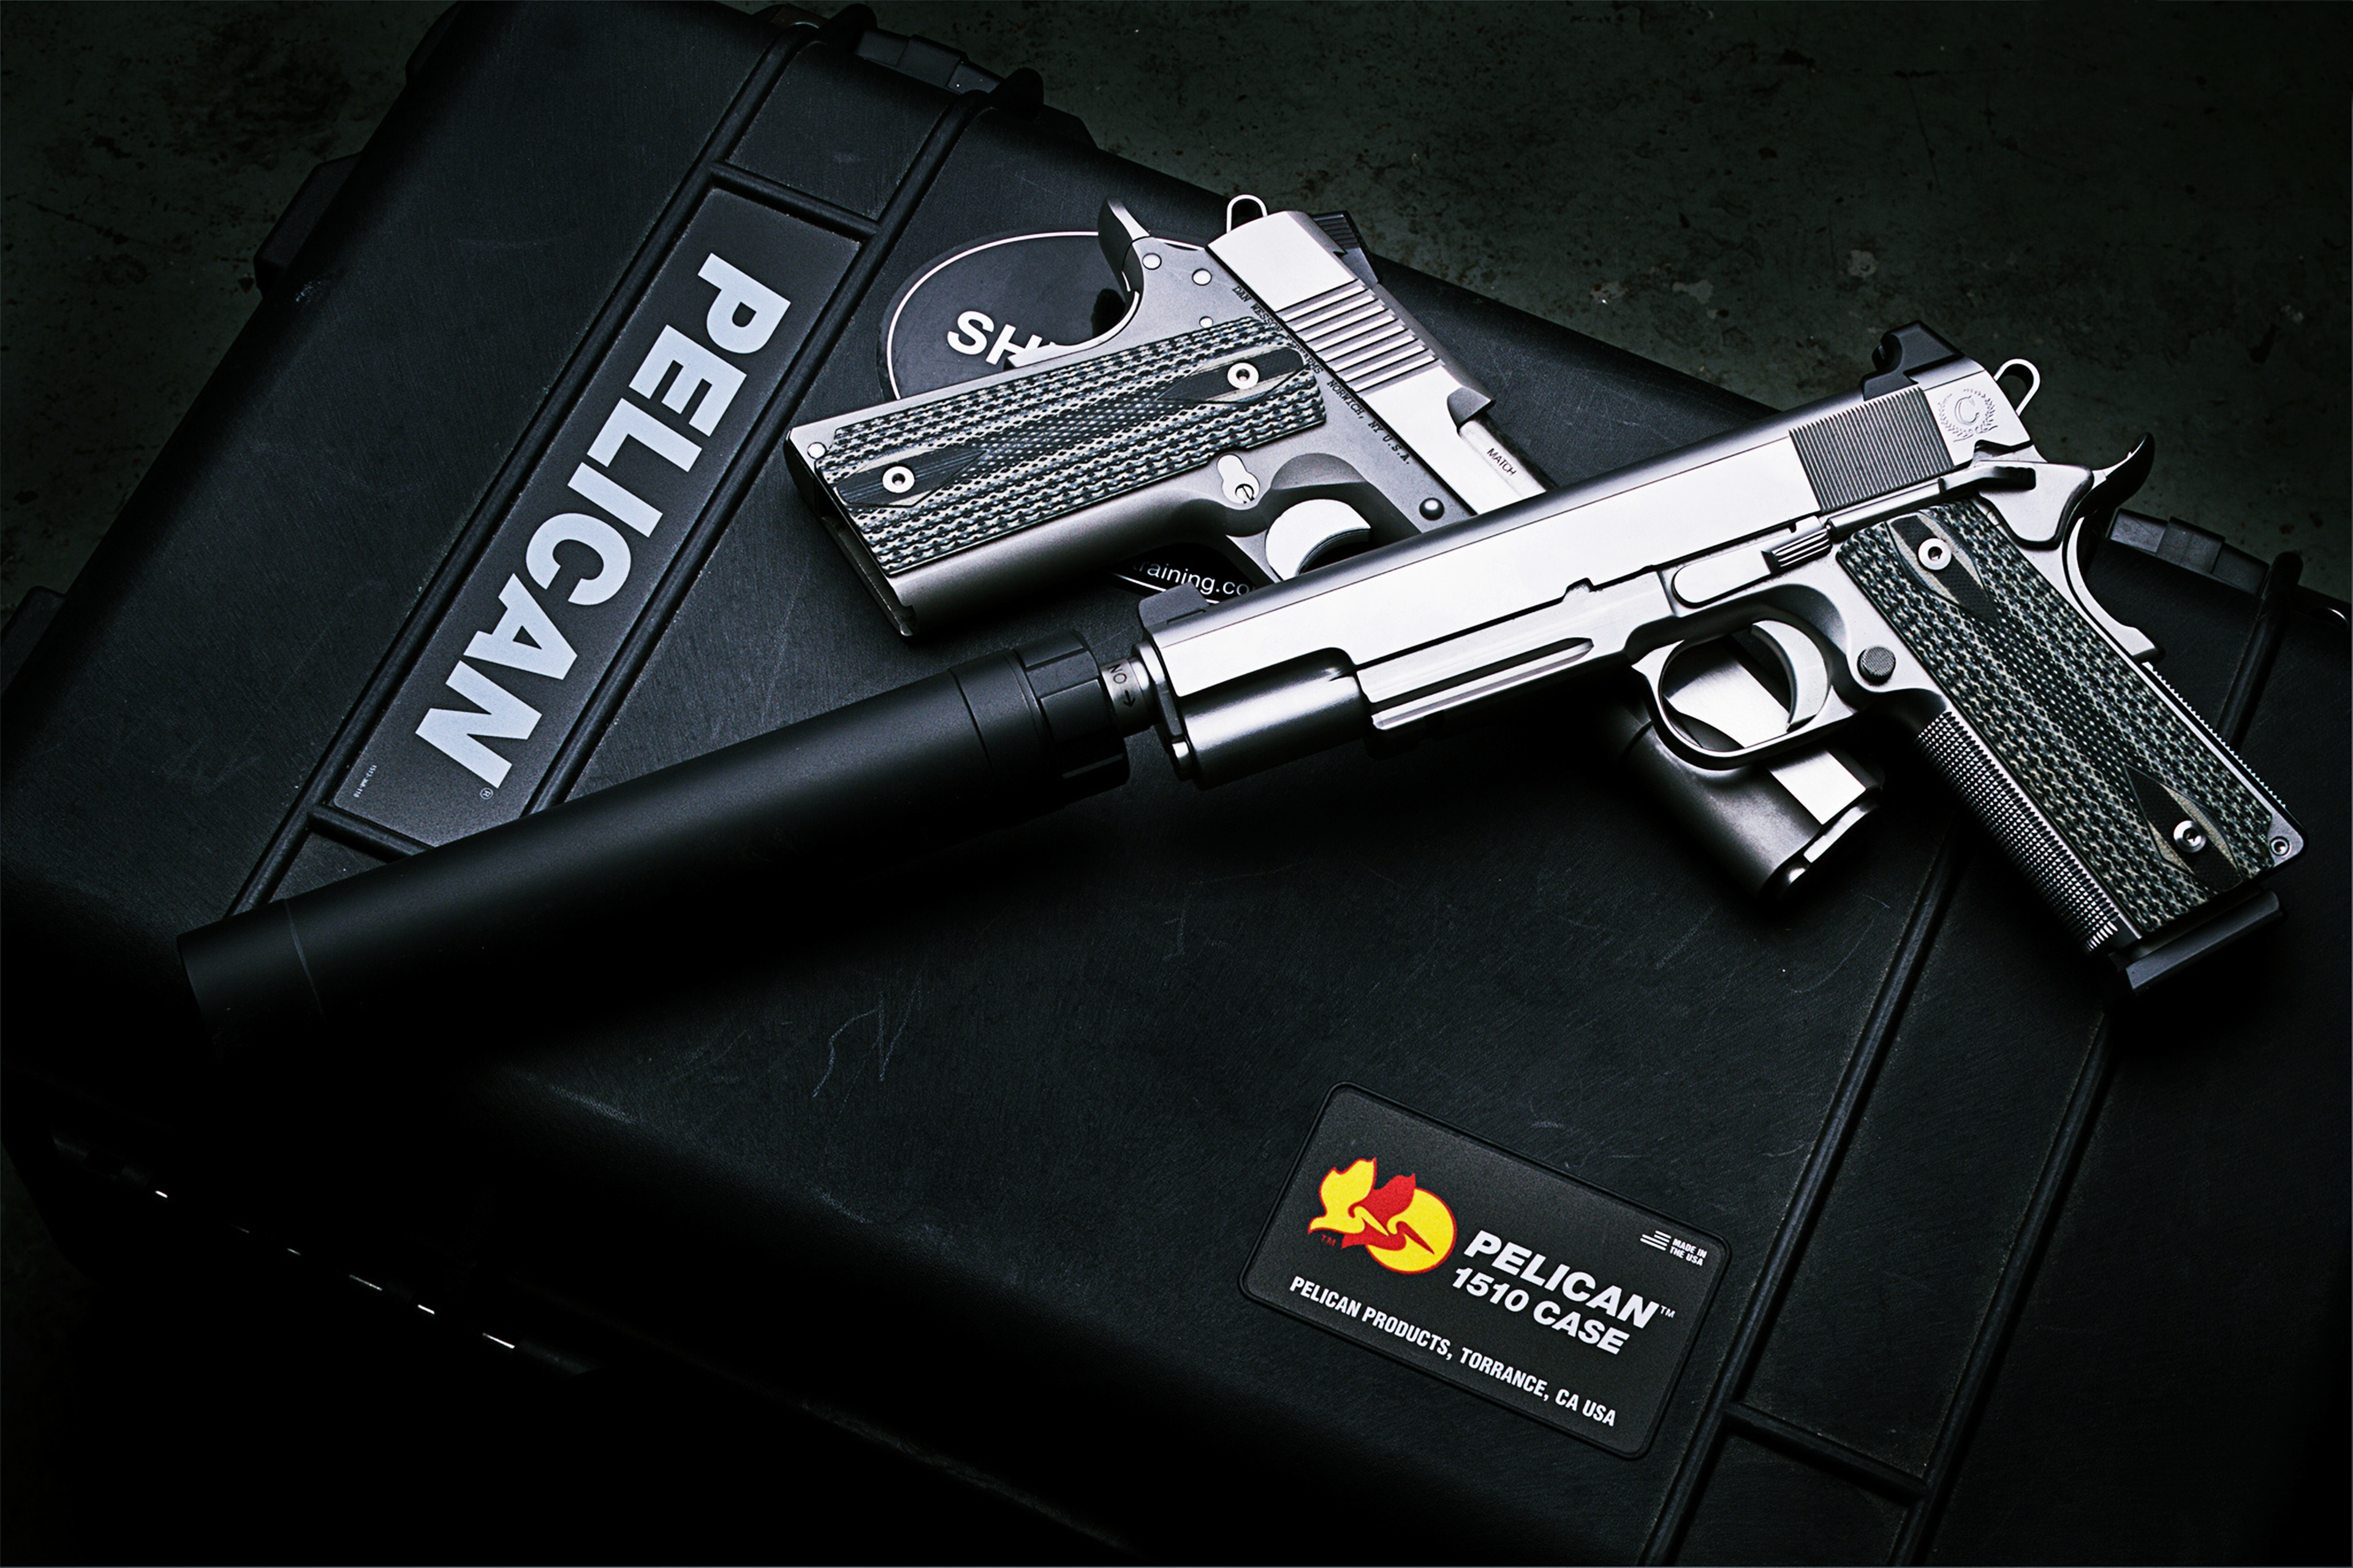 Dan Wesson 1911 4k Ultra HD Wallpaper Background Image 3840x2559